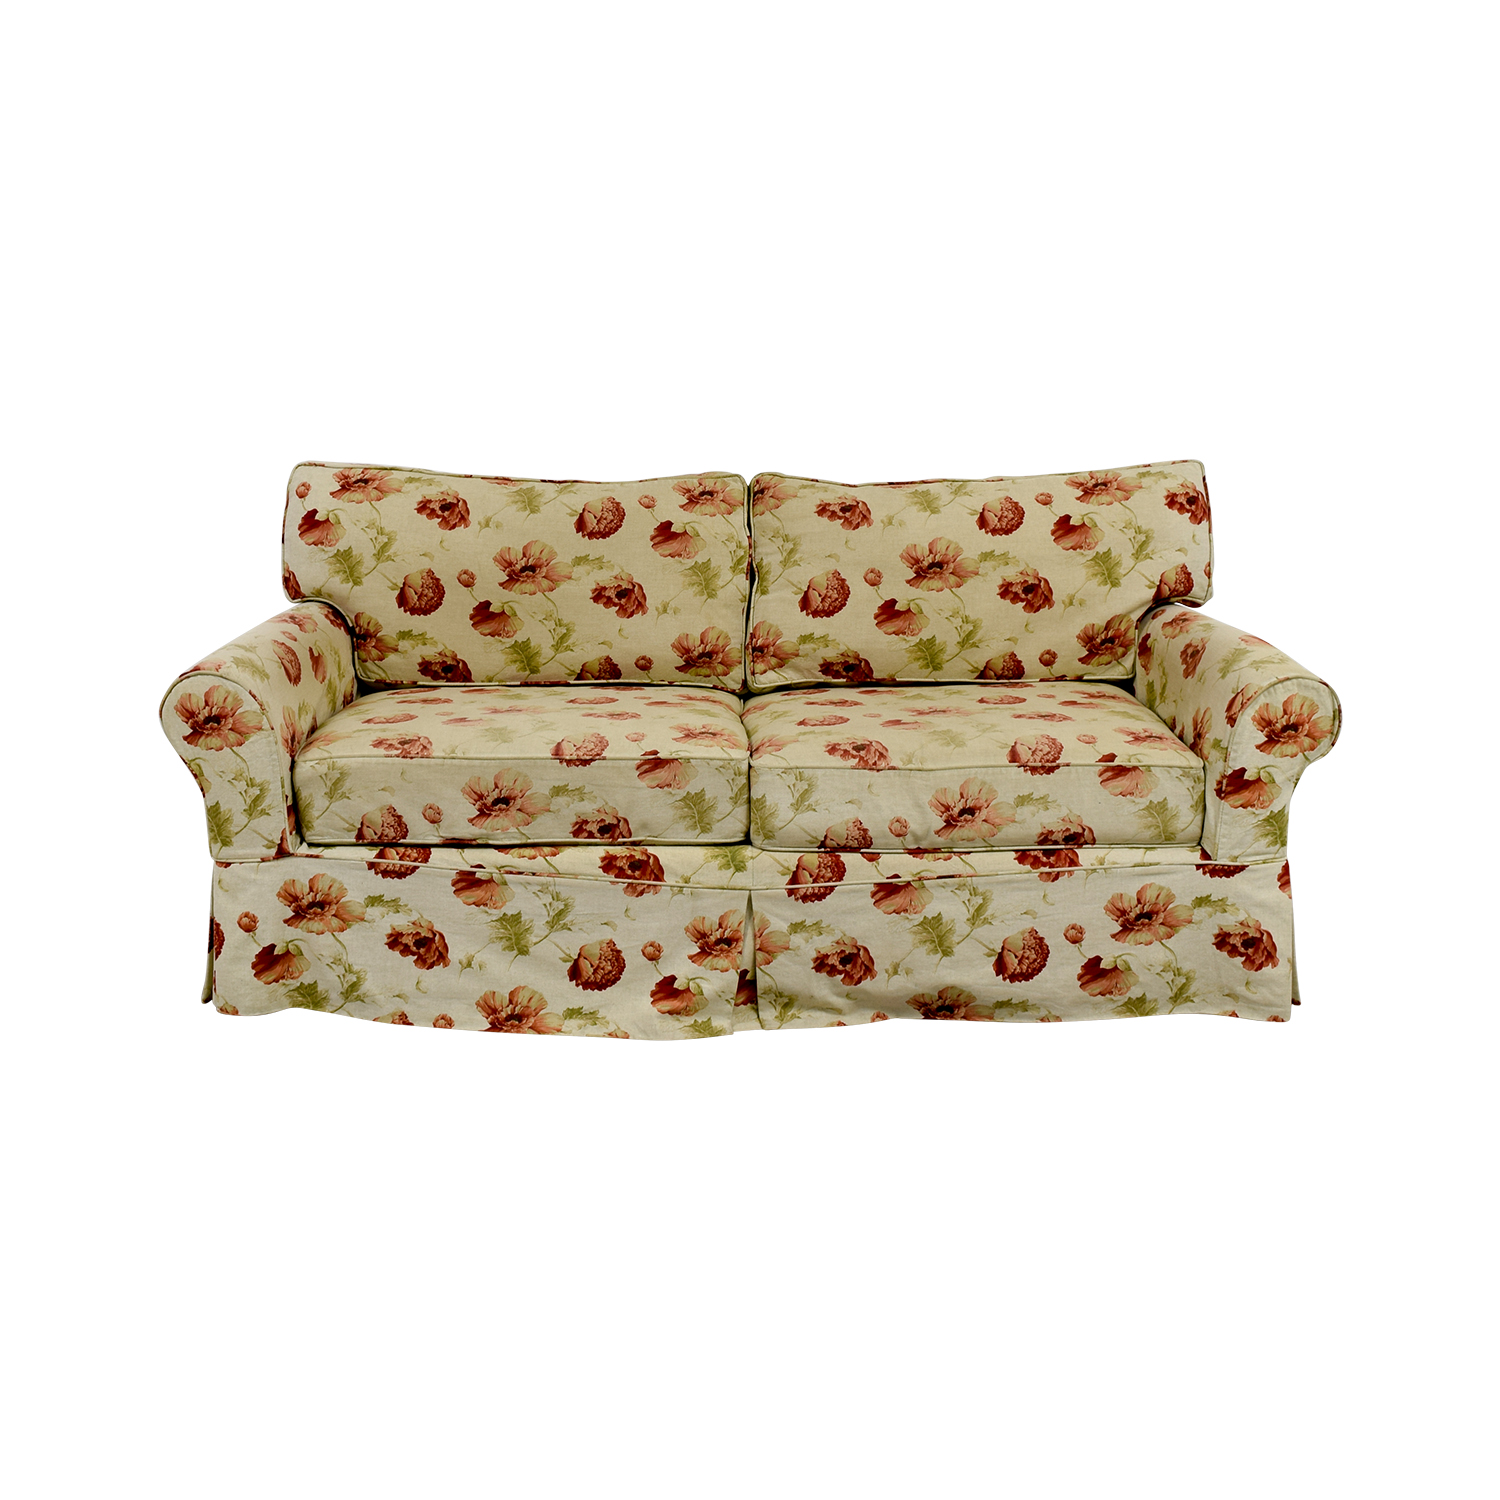 Buy Crate U0026 Barrel Crate U0026 Barrel Slip Covered Floral Sofa Online ...